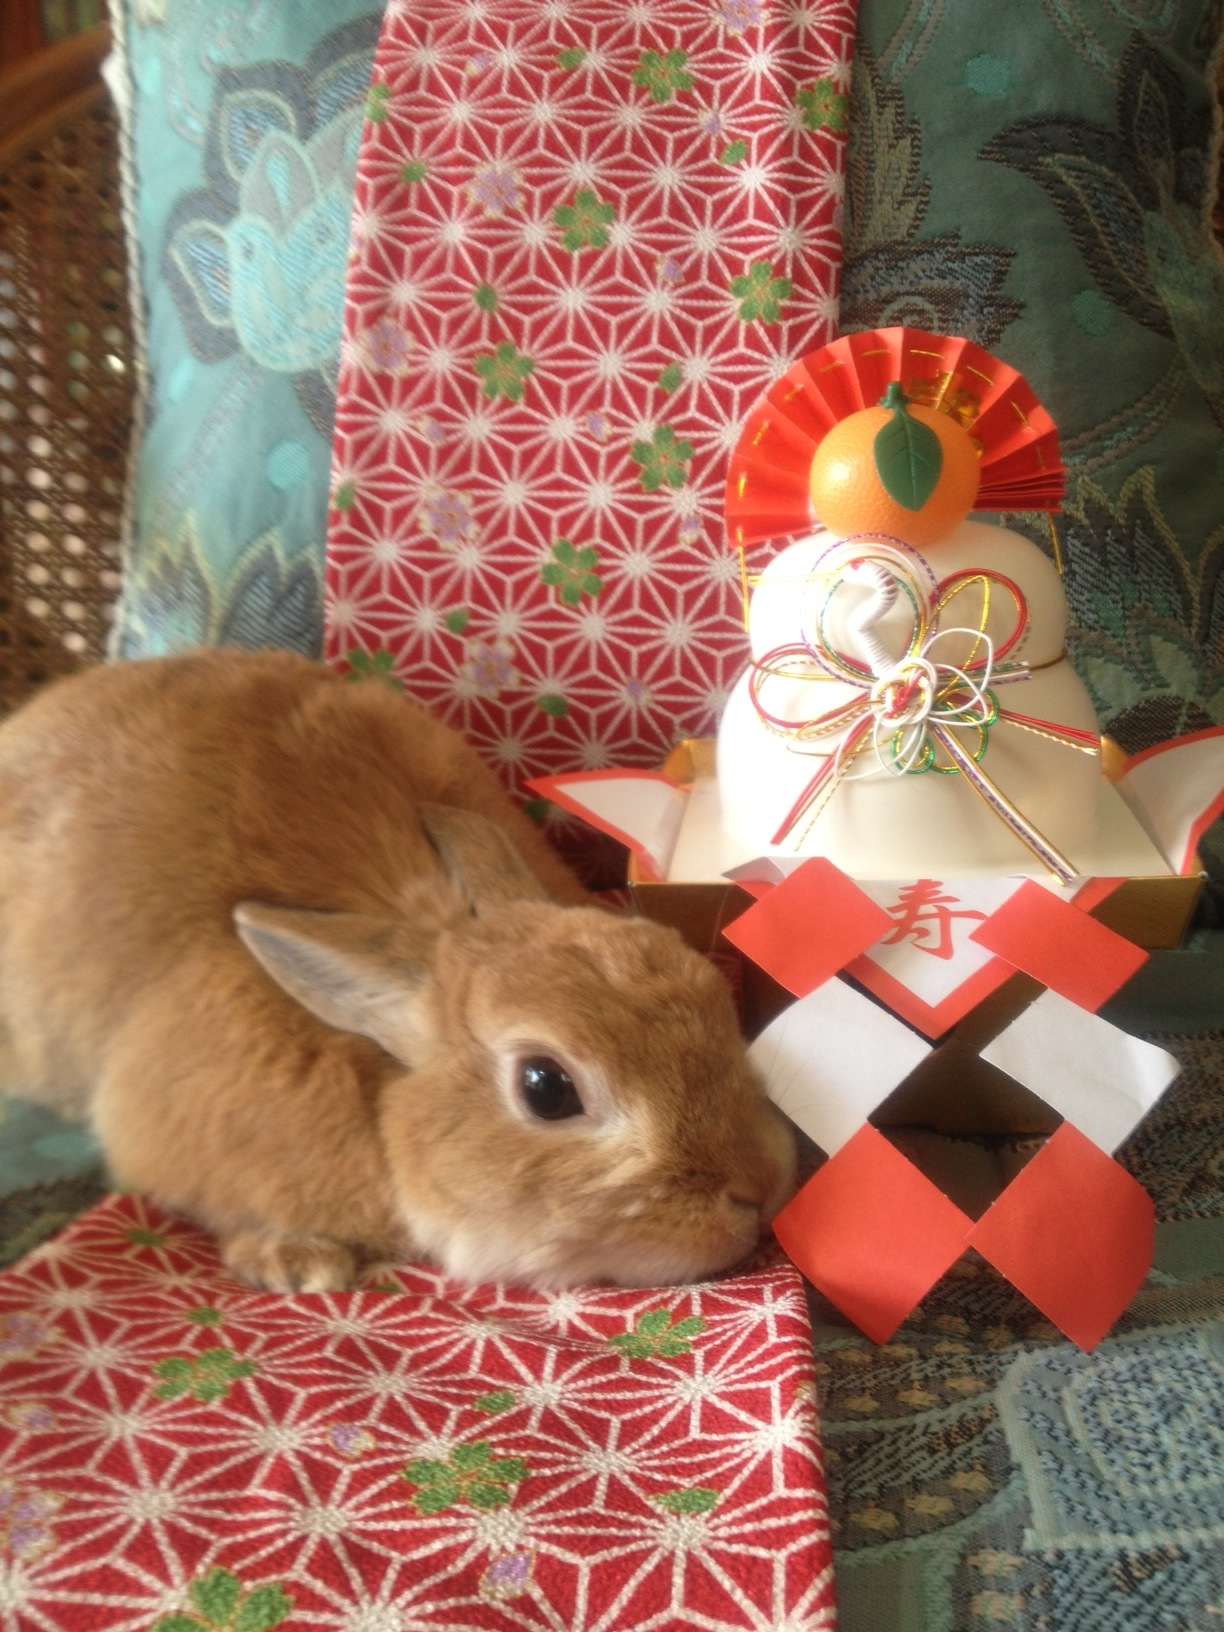 Bunny Celebrates the New Year in Japan with Kagami Mochi